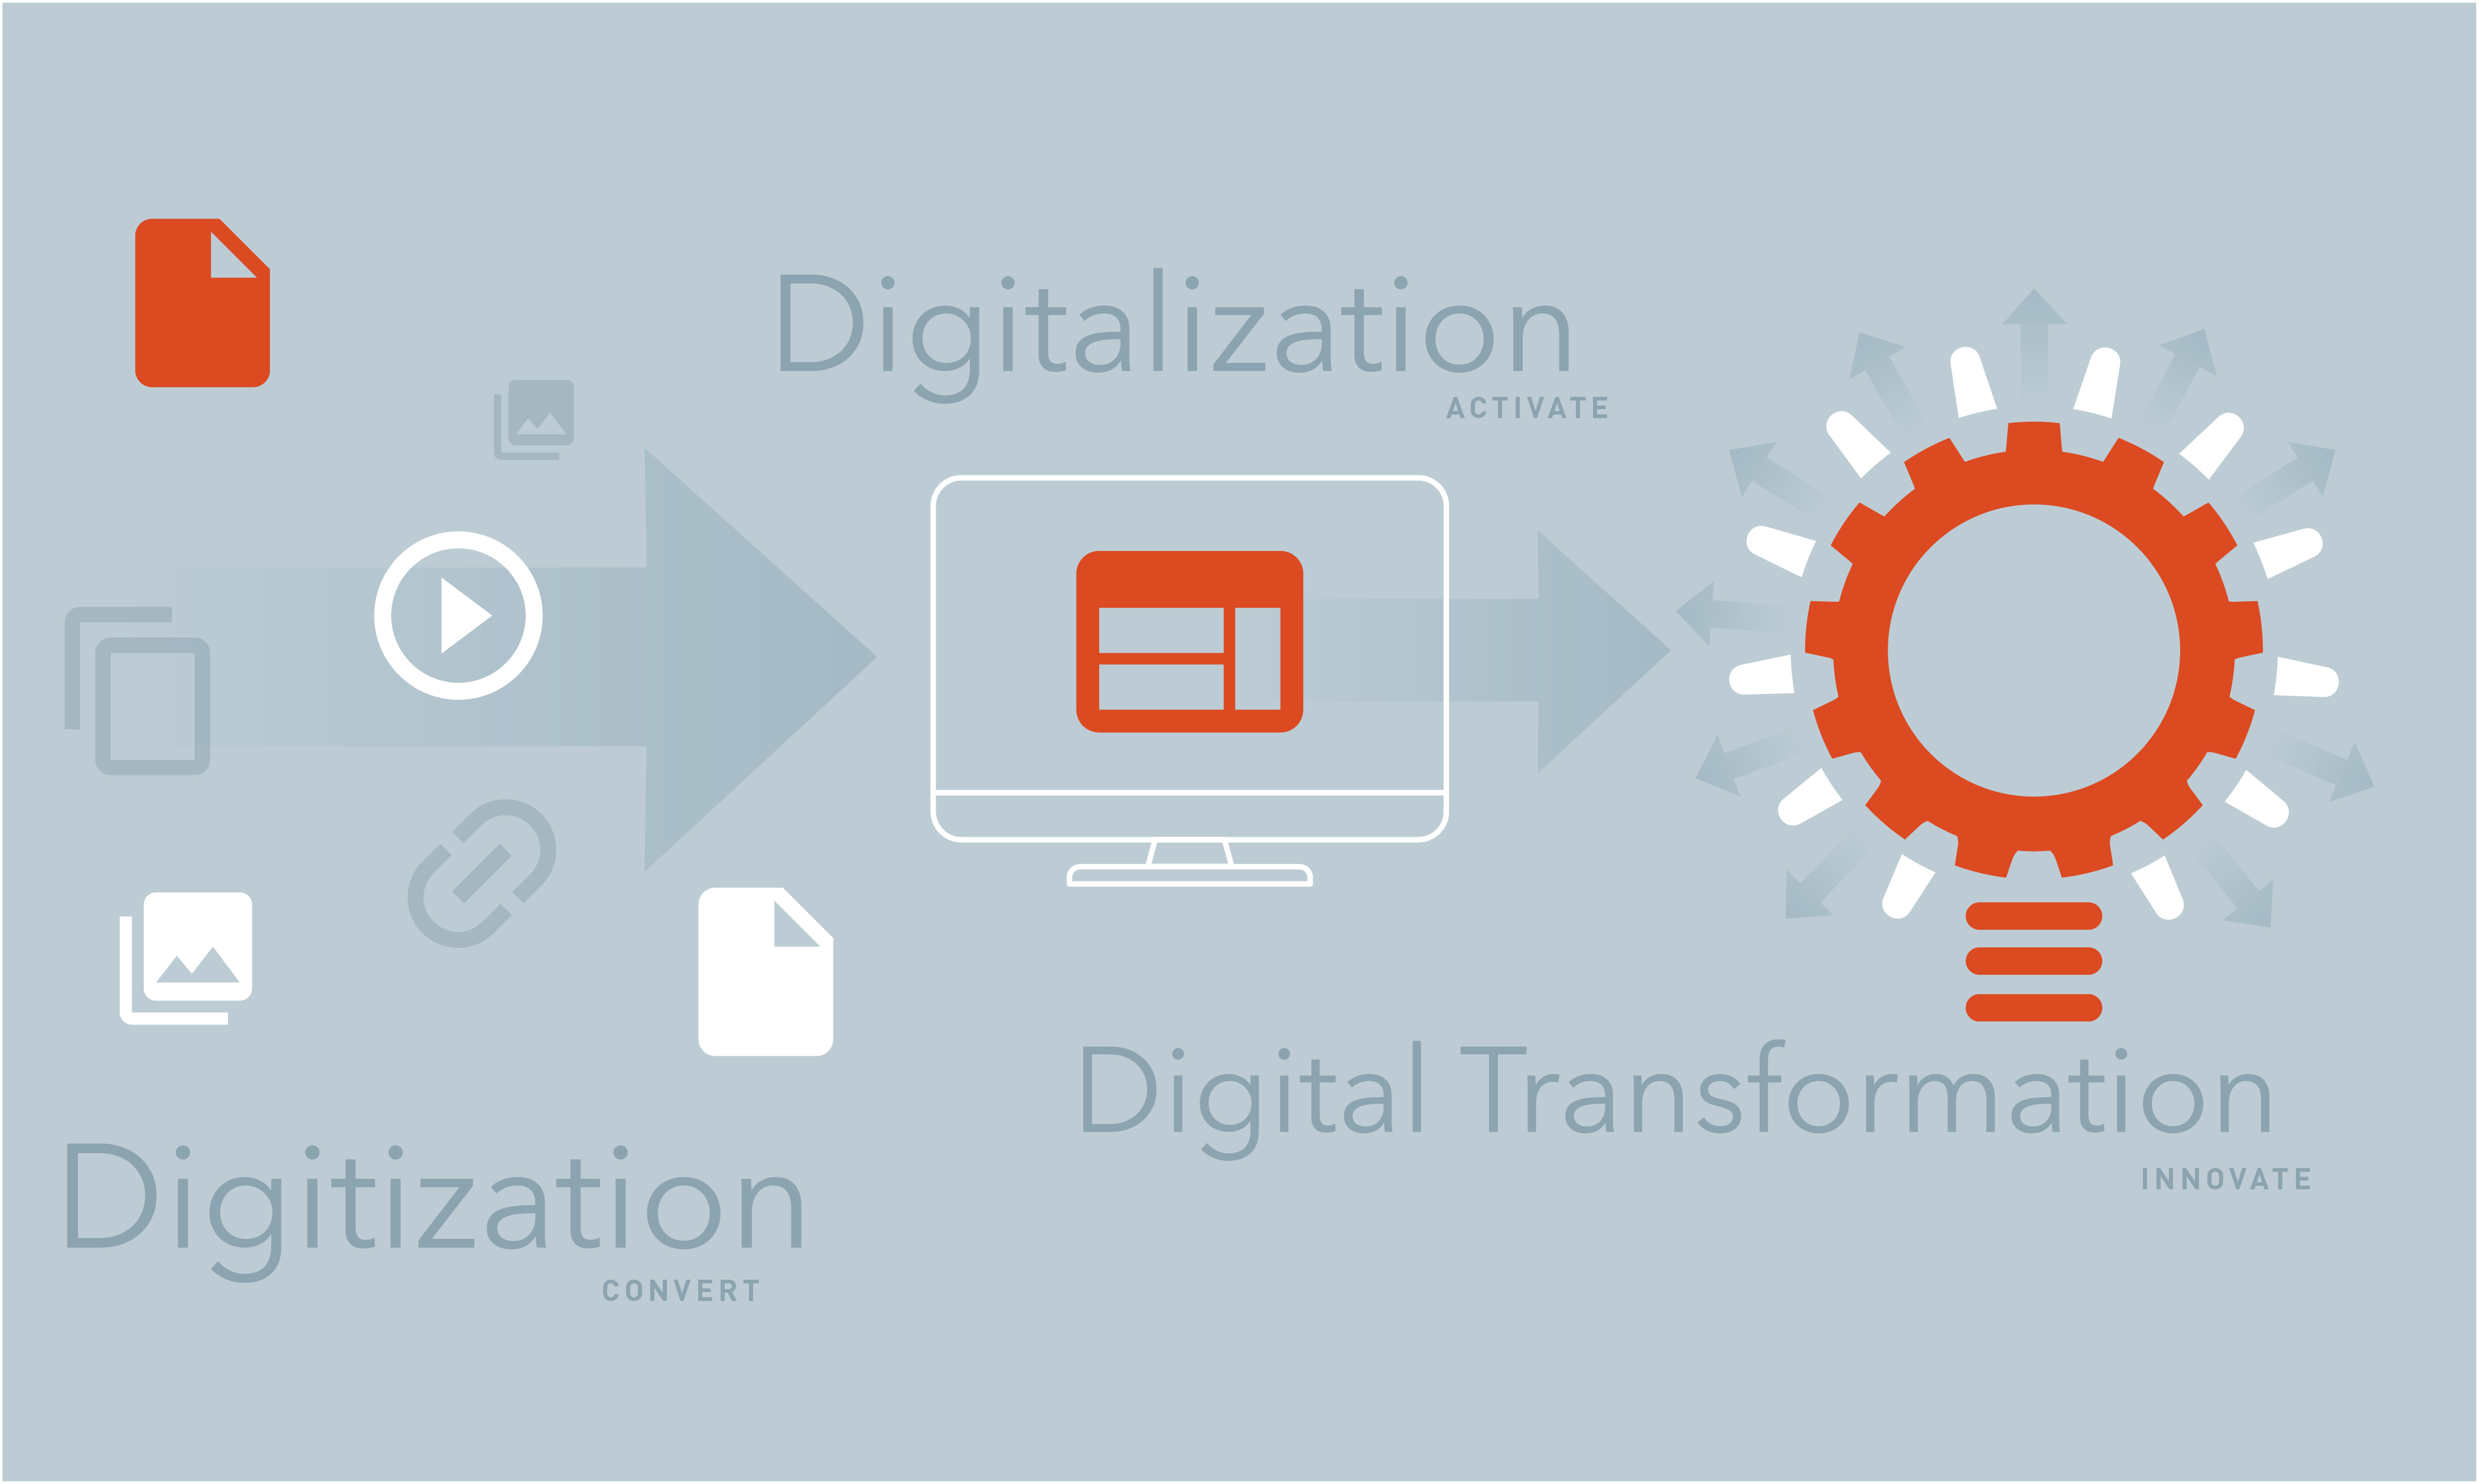 Digital Transformation Model